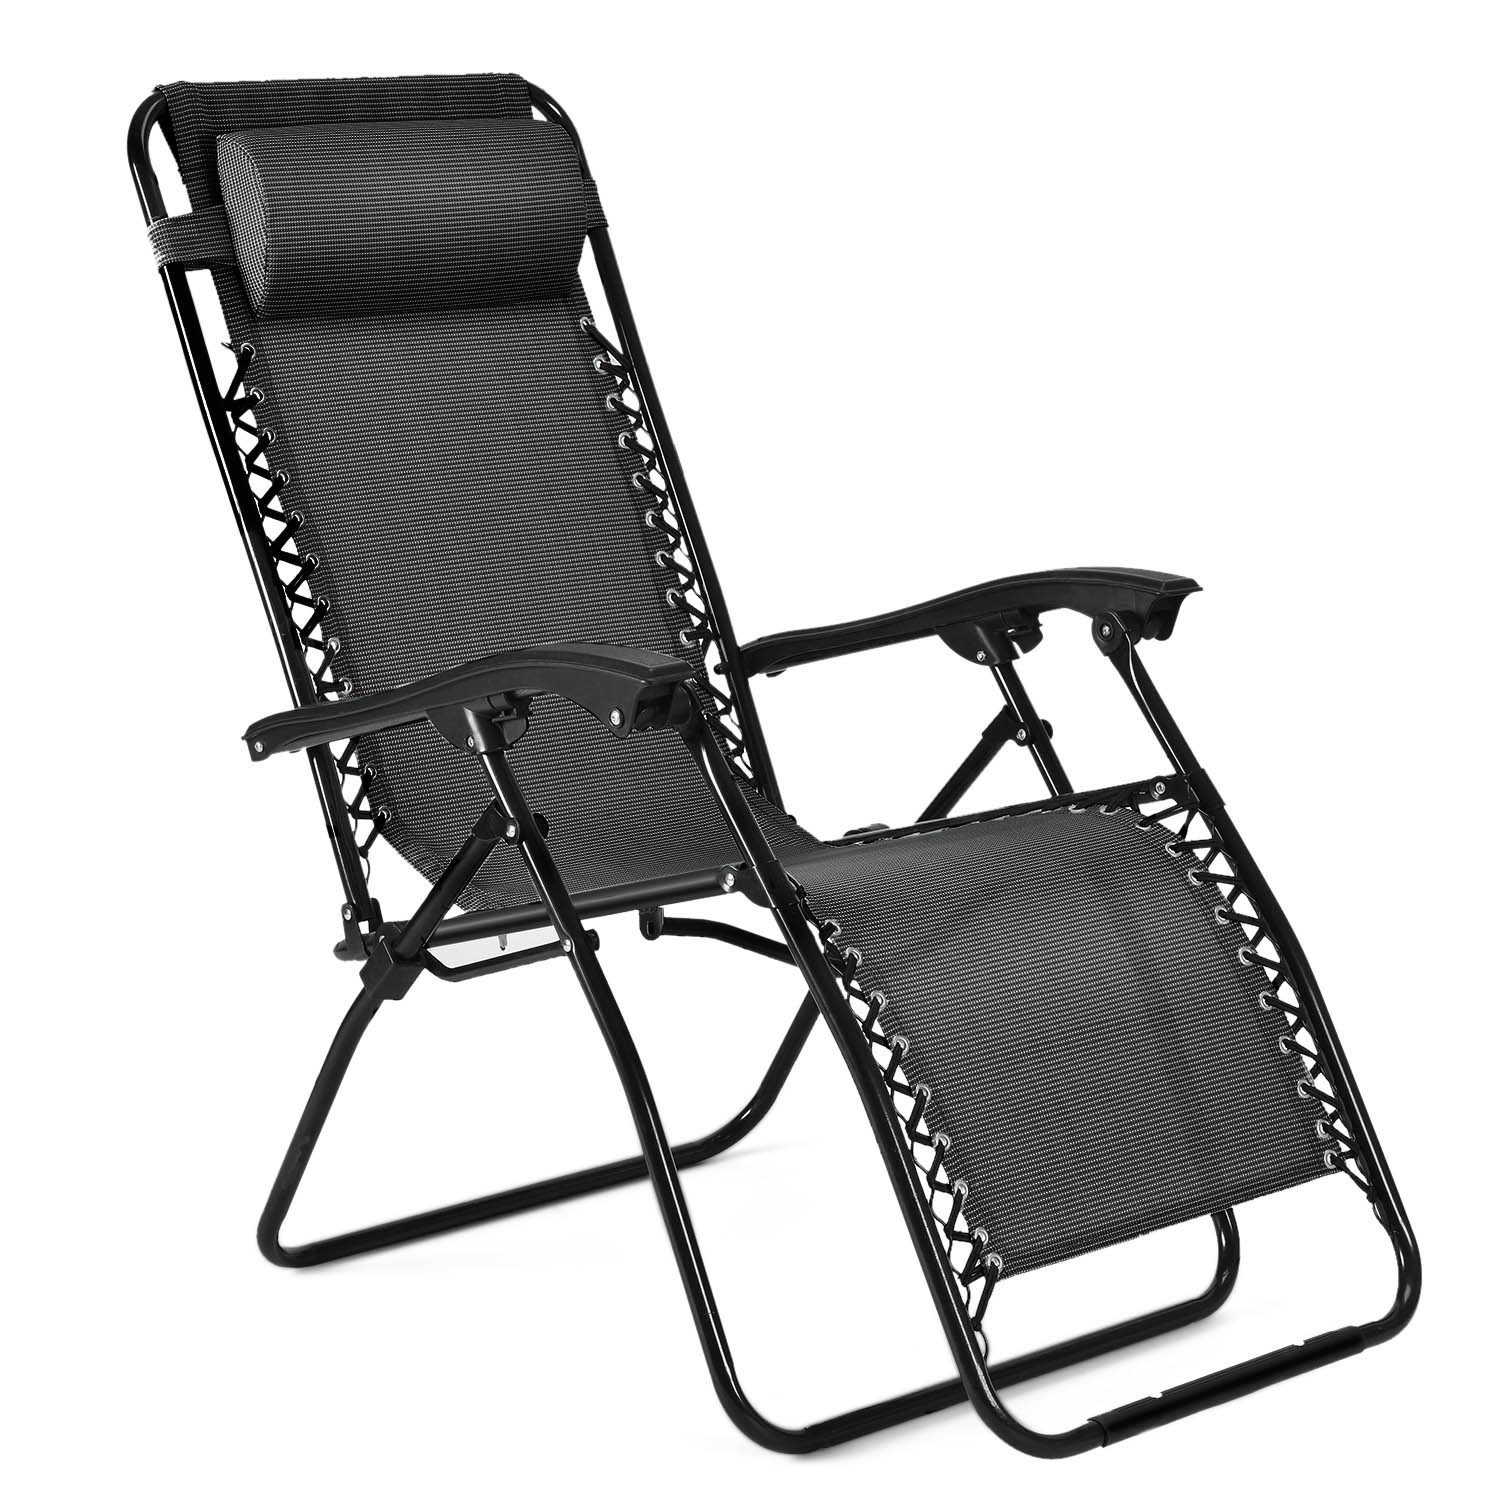 Zero Gravity Chair Outdoor Lounge Folding Reclining Chair for Yard Black